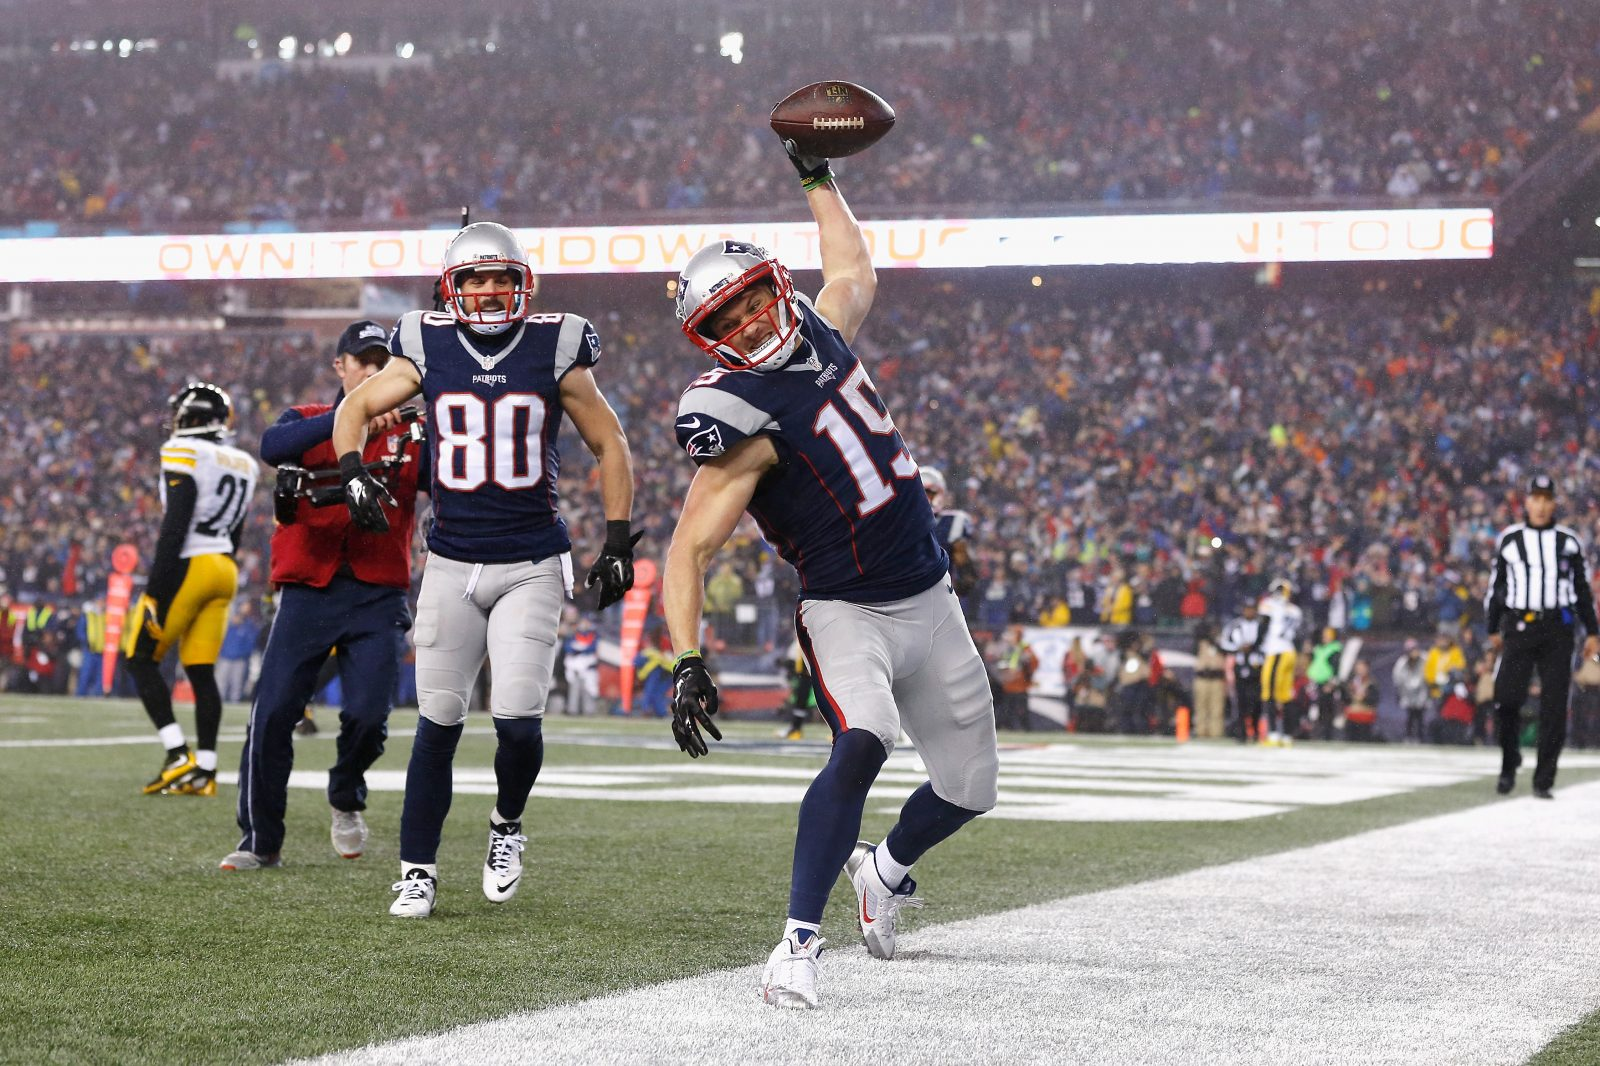 Western New York sports fans were not as interested this year in the New England Patriots defeat of the Pittsburgh Steelers and other NFL playoff games. (Jim Rogash/Getty Images)